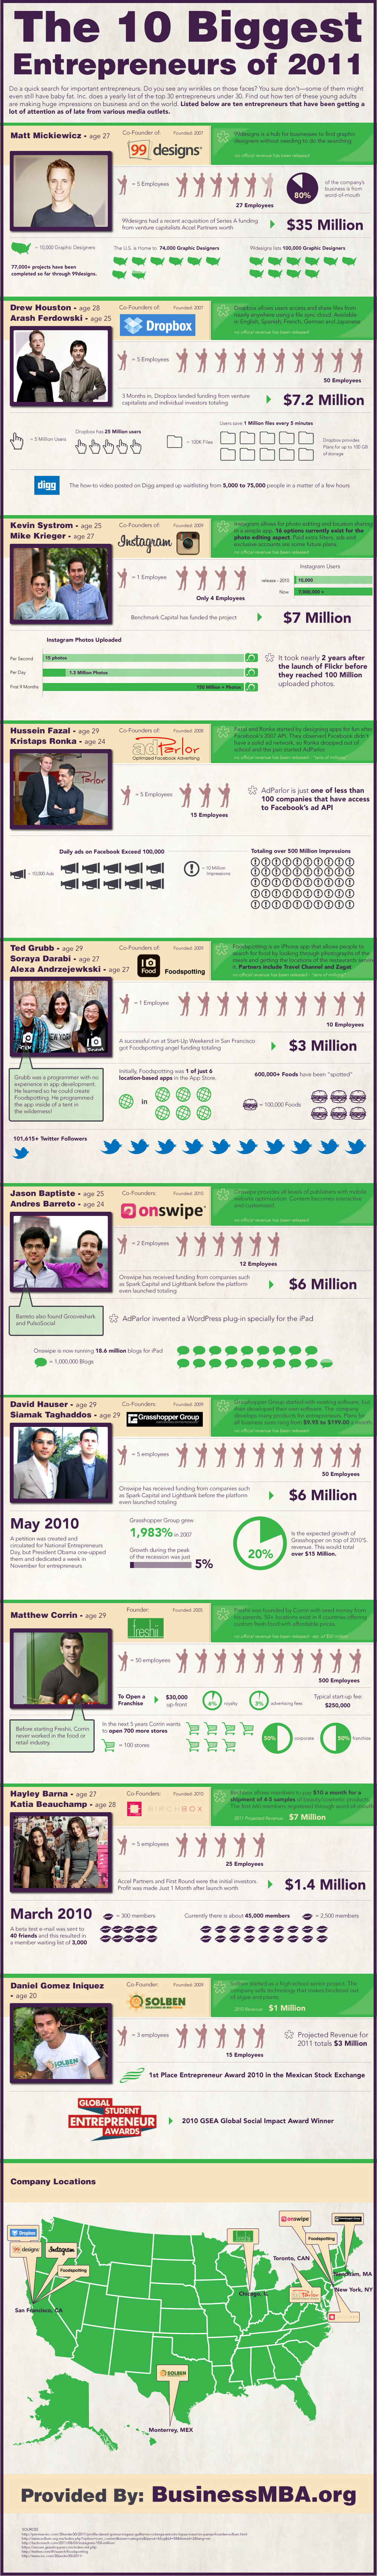 top 10 under 30 Top 10 Entrepreneurs Under 30 [INFOGRAPHIC]